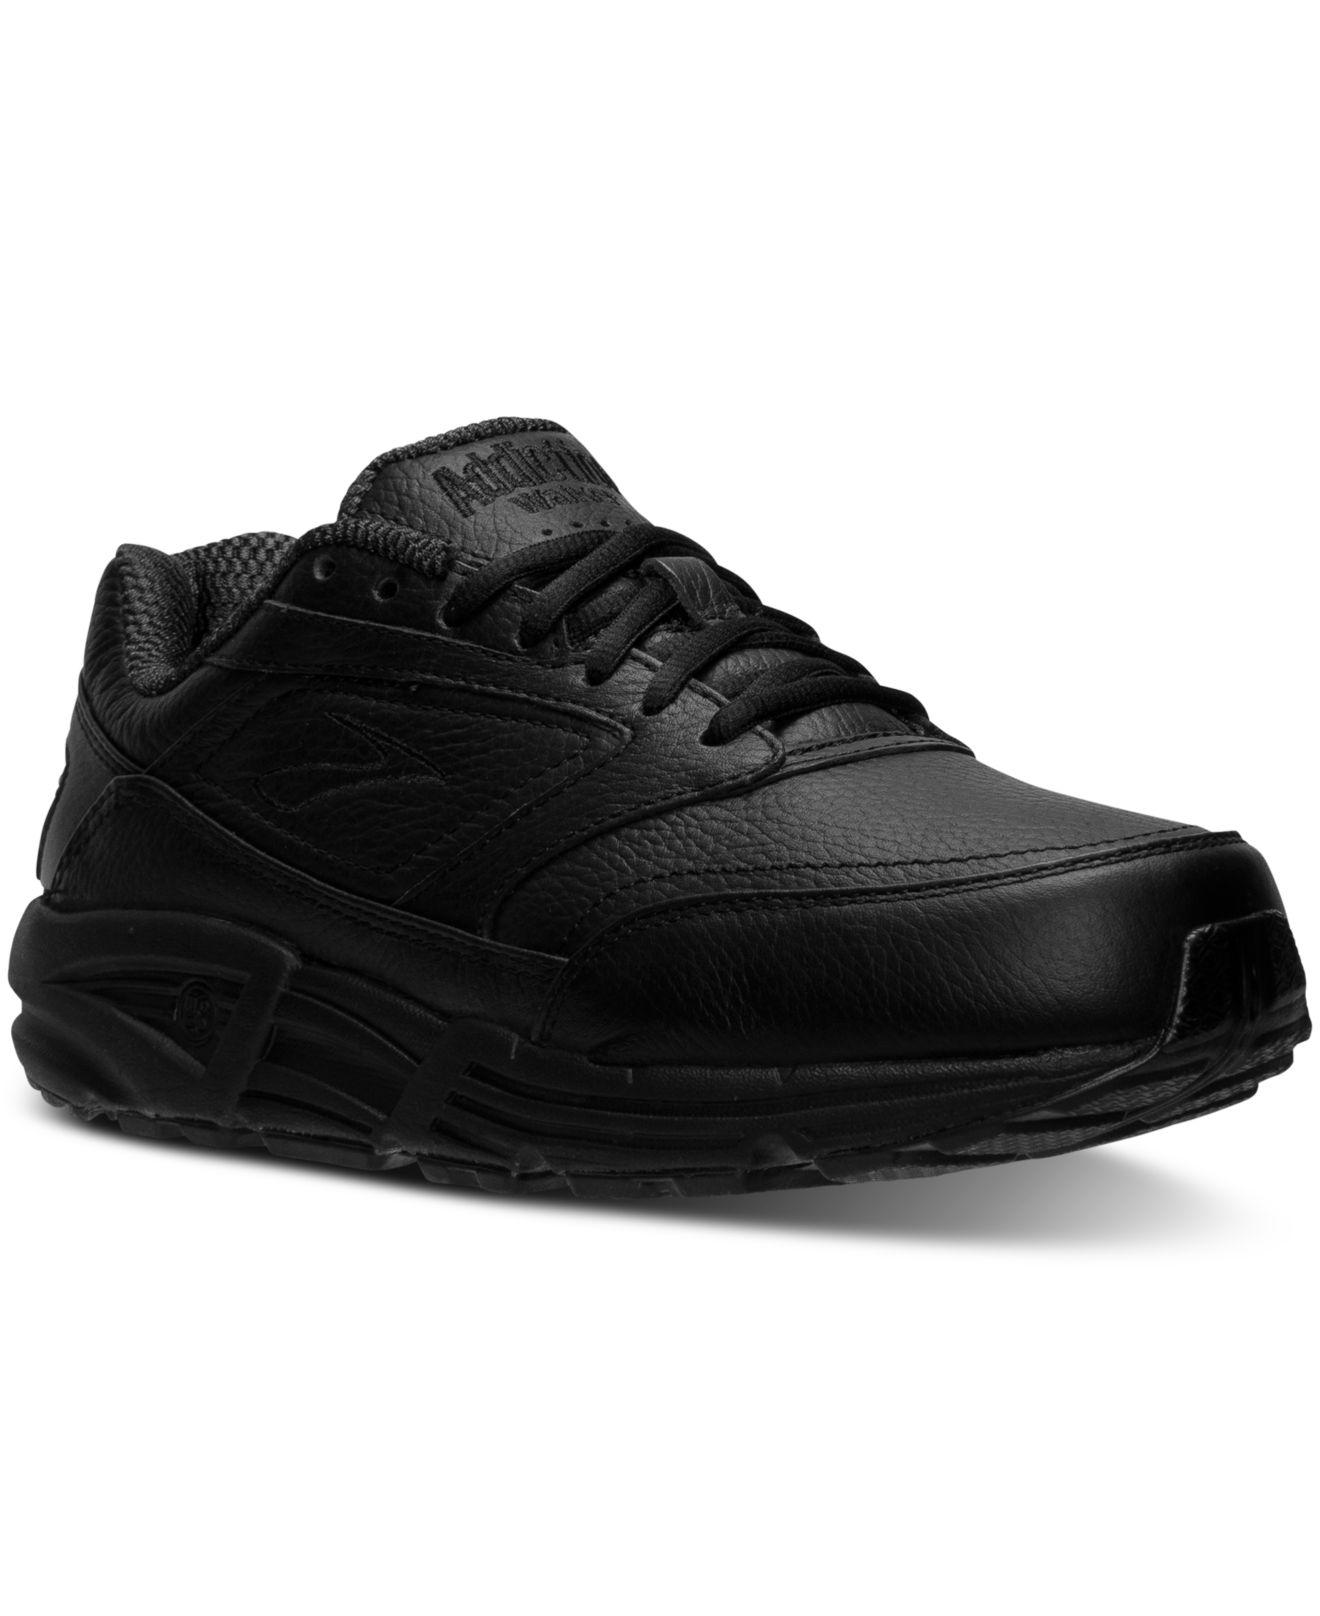 a15051f6ac257 Brooks. Black Women s Addiction Walker Casual Sneakers From Finish Line